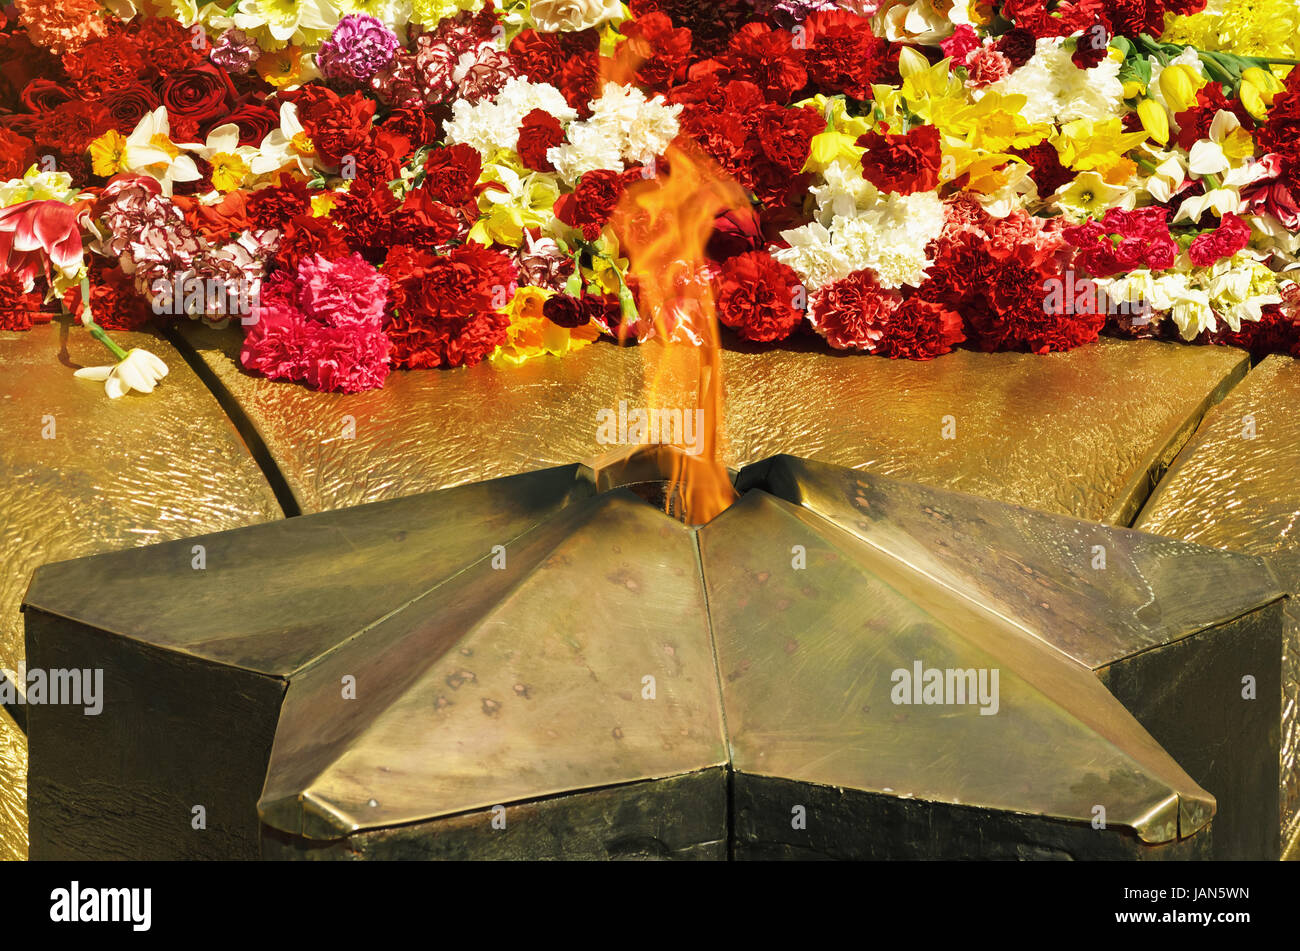 The Eternal Flame Memorializing Losses During The Fight Against Fascism - Stock Image